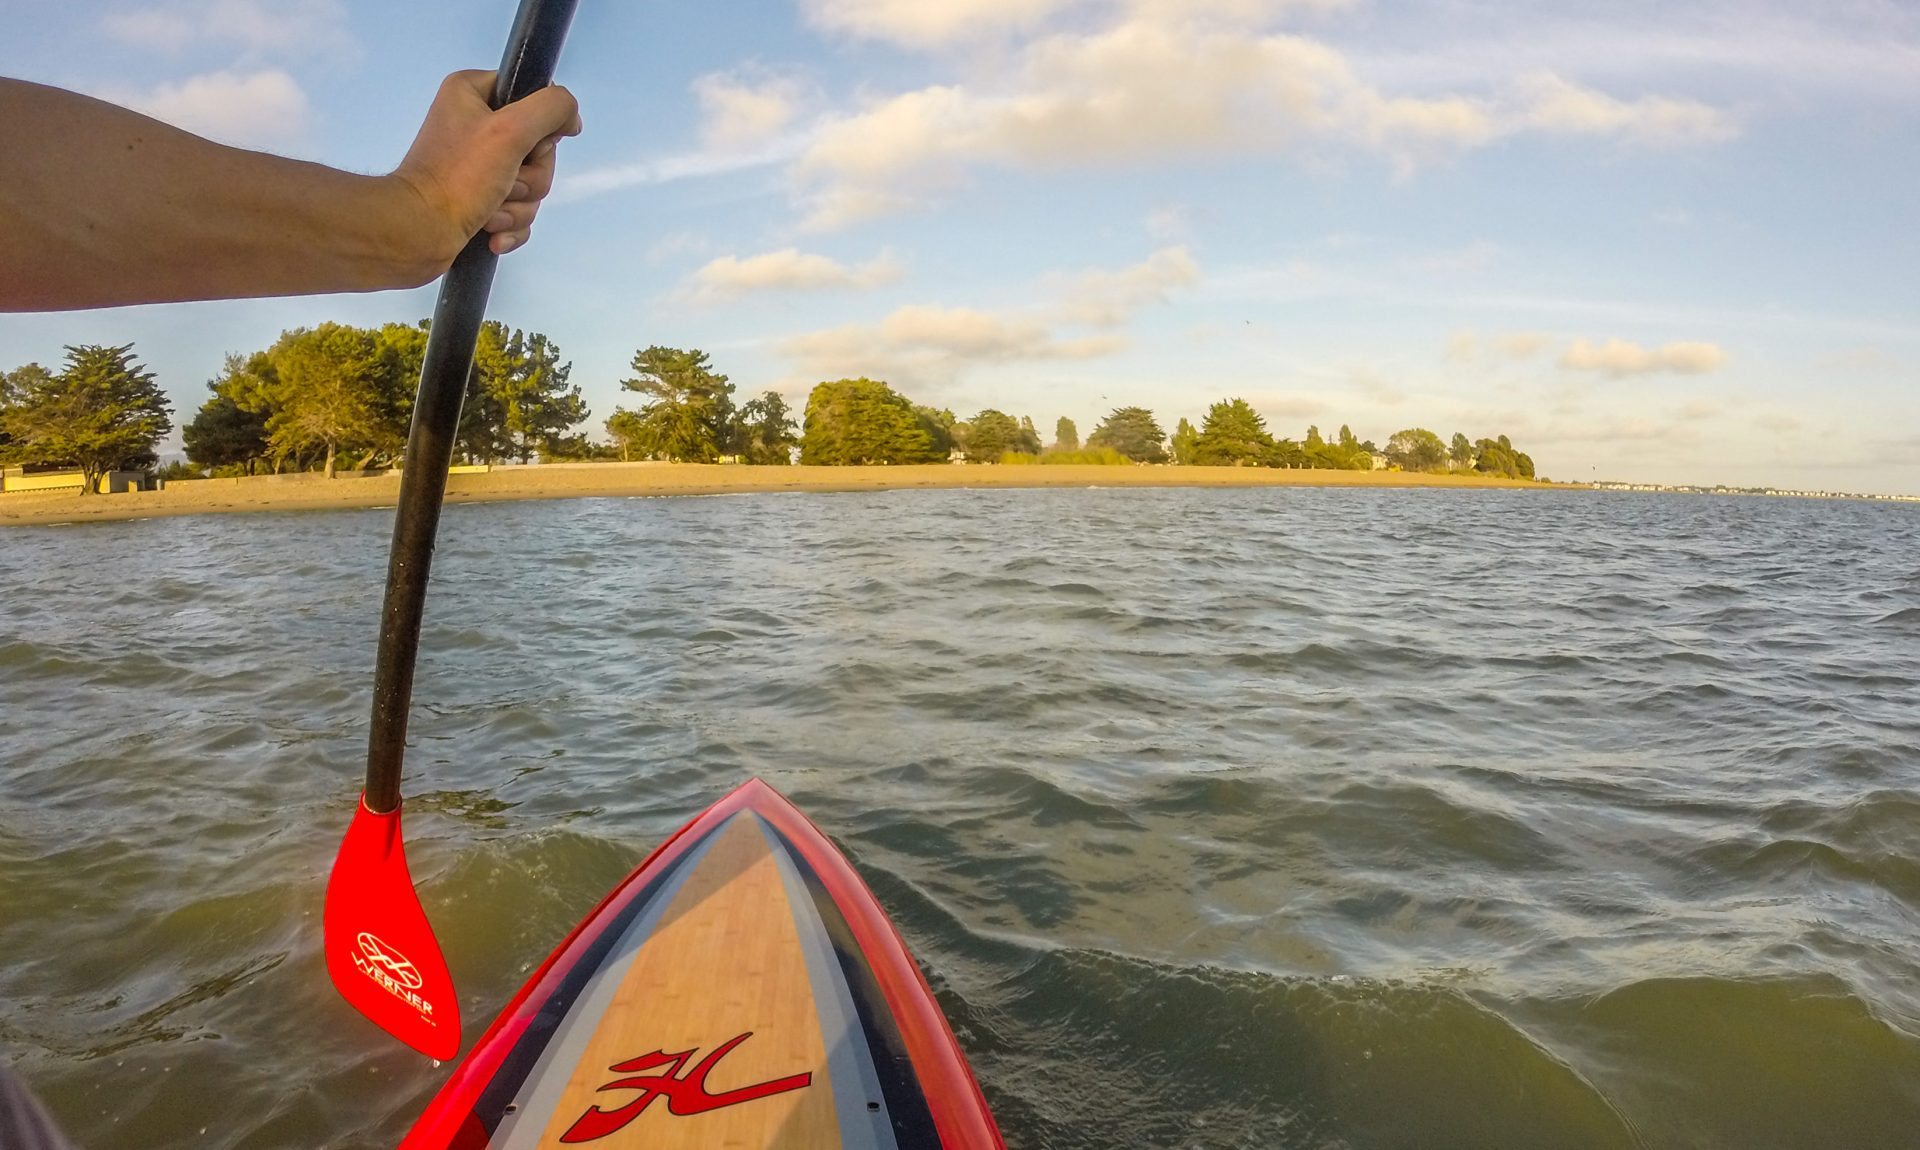 Paddler's view from the water, with arm and paddle, looking to beach and trees beyond